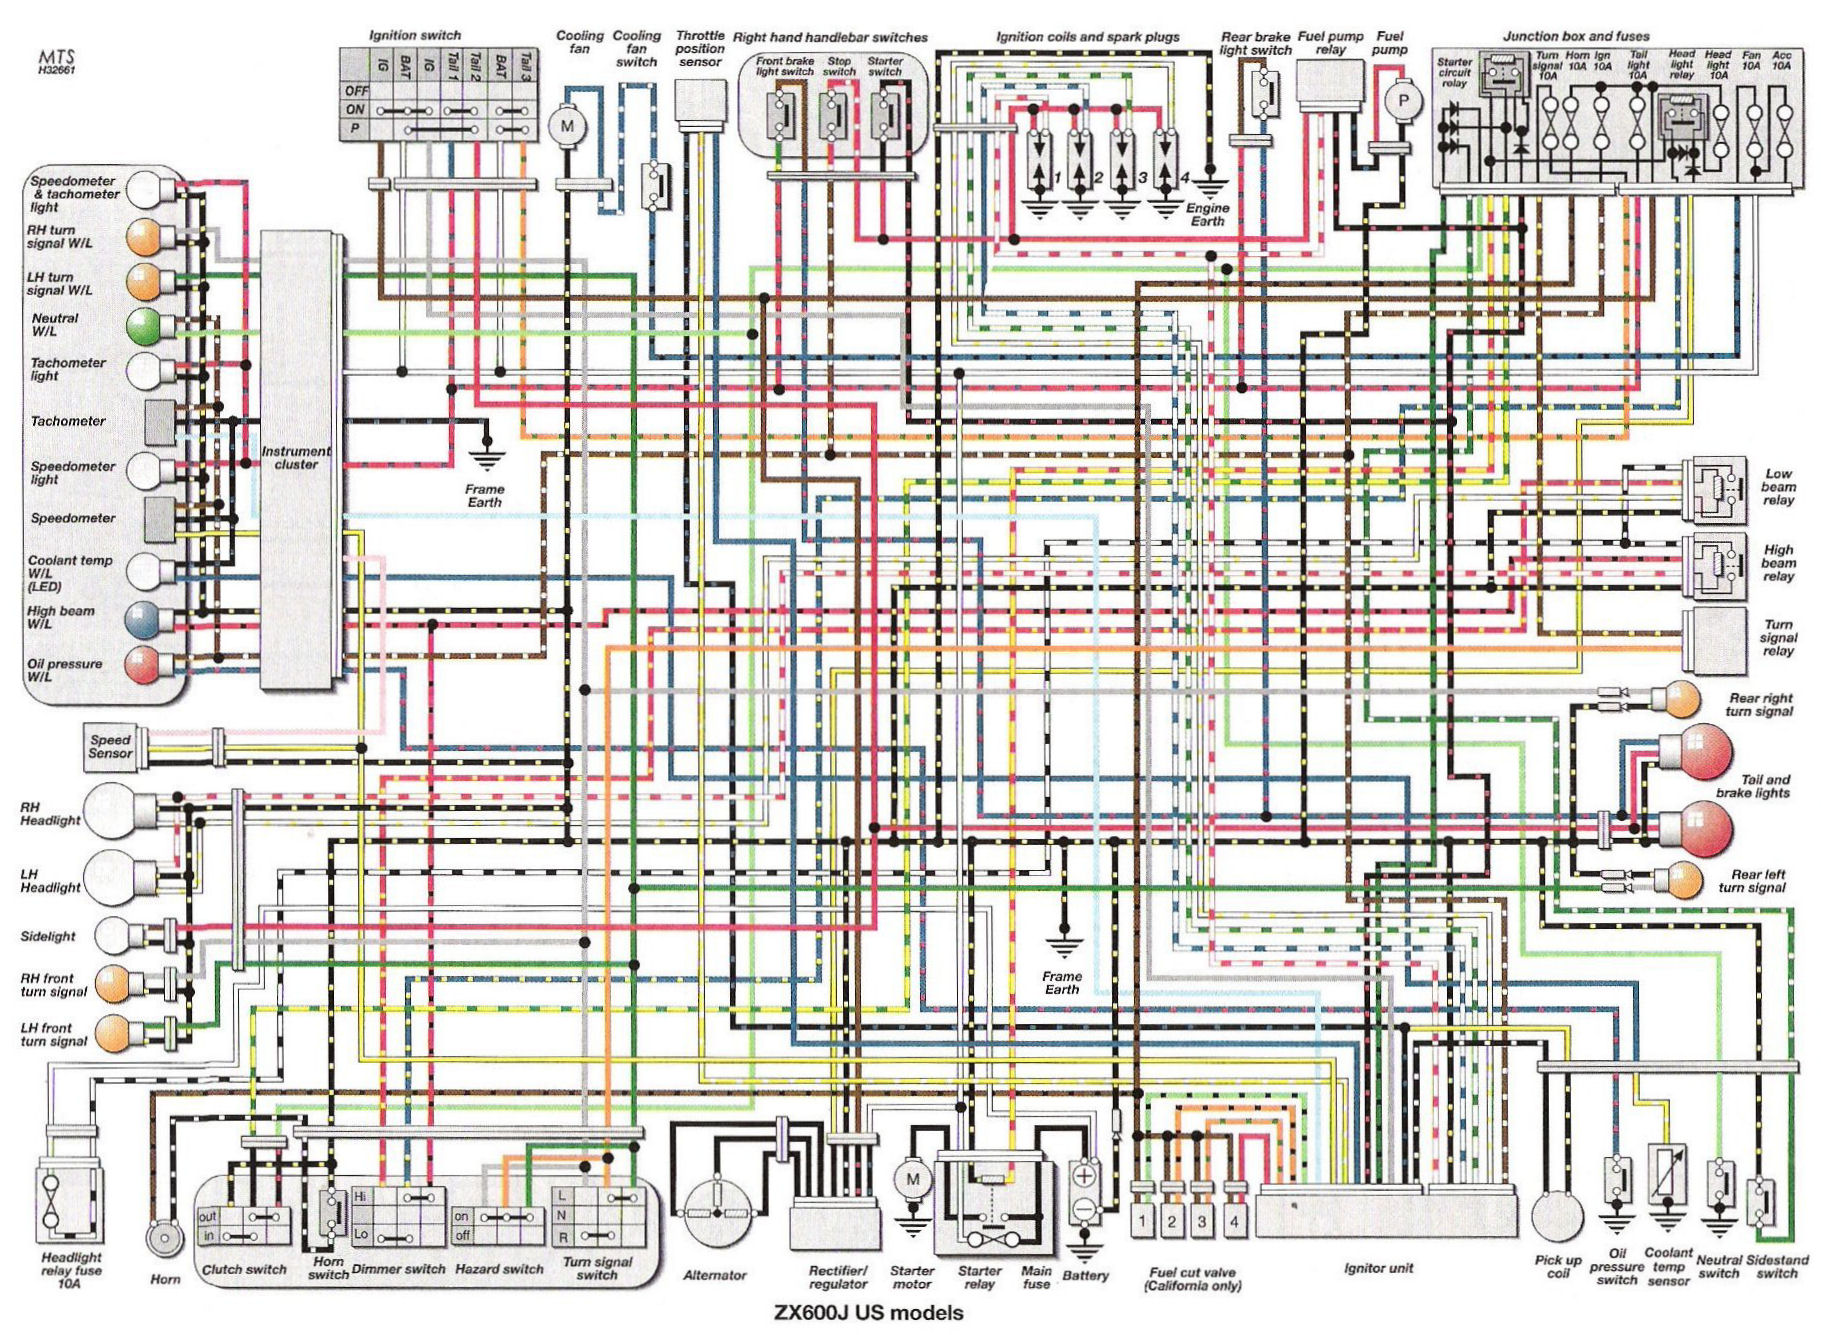 🏆 [DIAGRAM in Pictures Database] 201yamaha R6 Manual Wiring Diagram Just  Download or Read Wiring Diagram - BOARD-WIRING.ONYXUM.COMComplete Diagram Picture Database - Onyxum.com